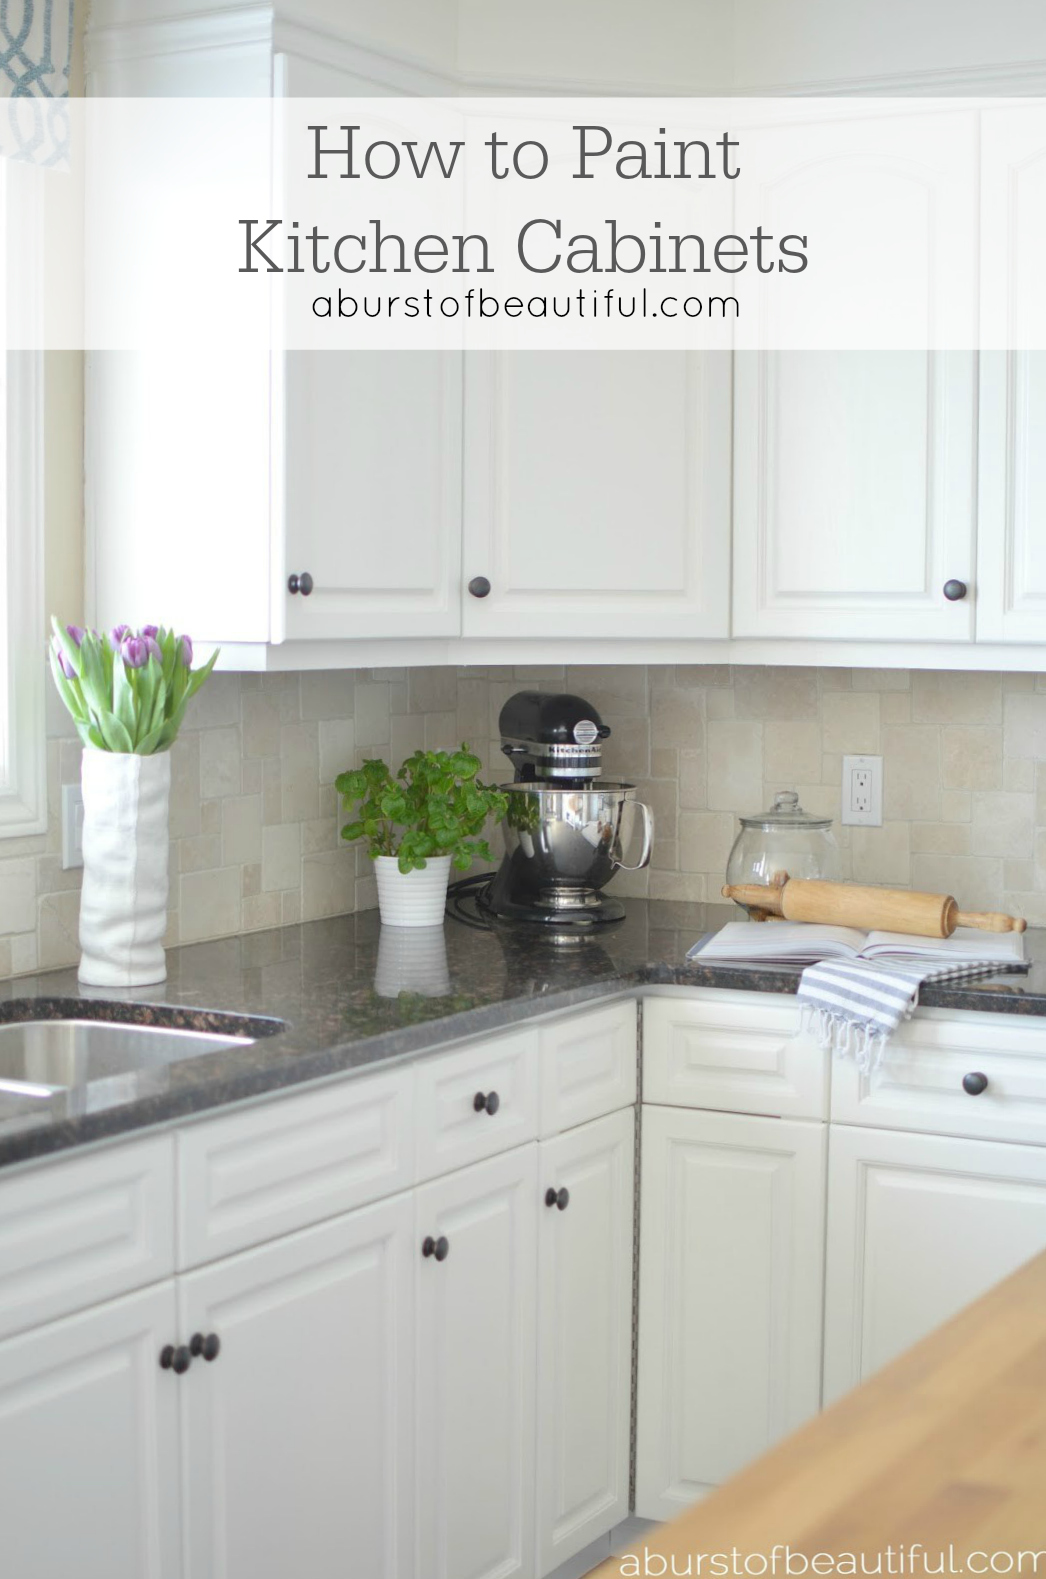 How To Refinish Wooden Kitchen Cabinets